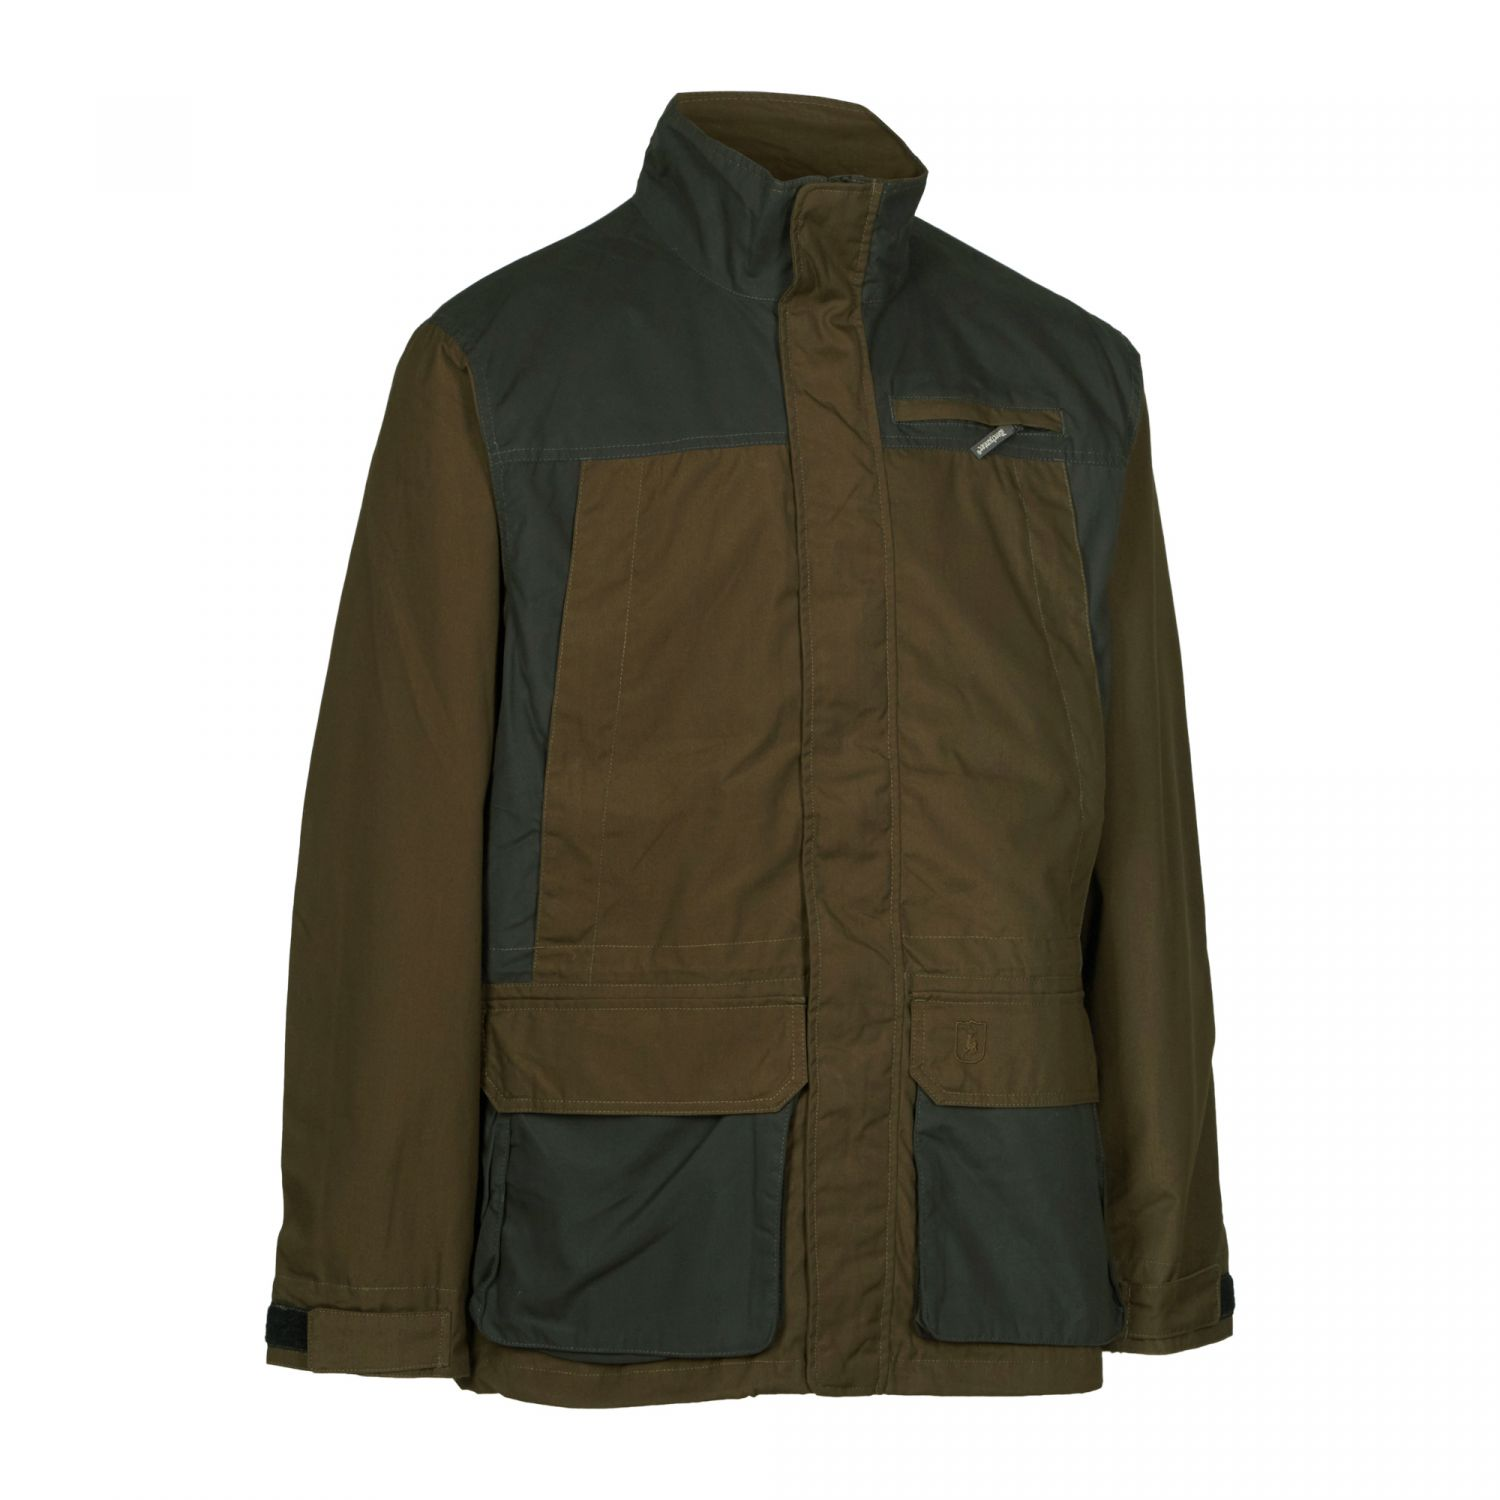 Deerhunter Lofoten Jacket (5533)